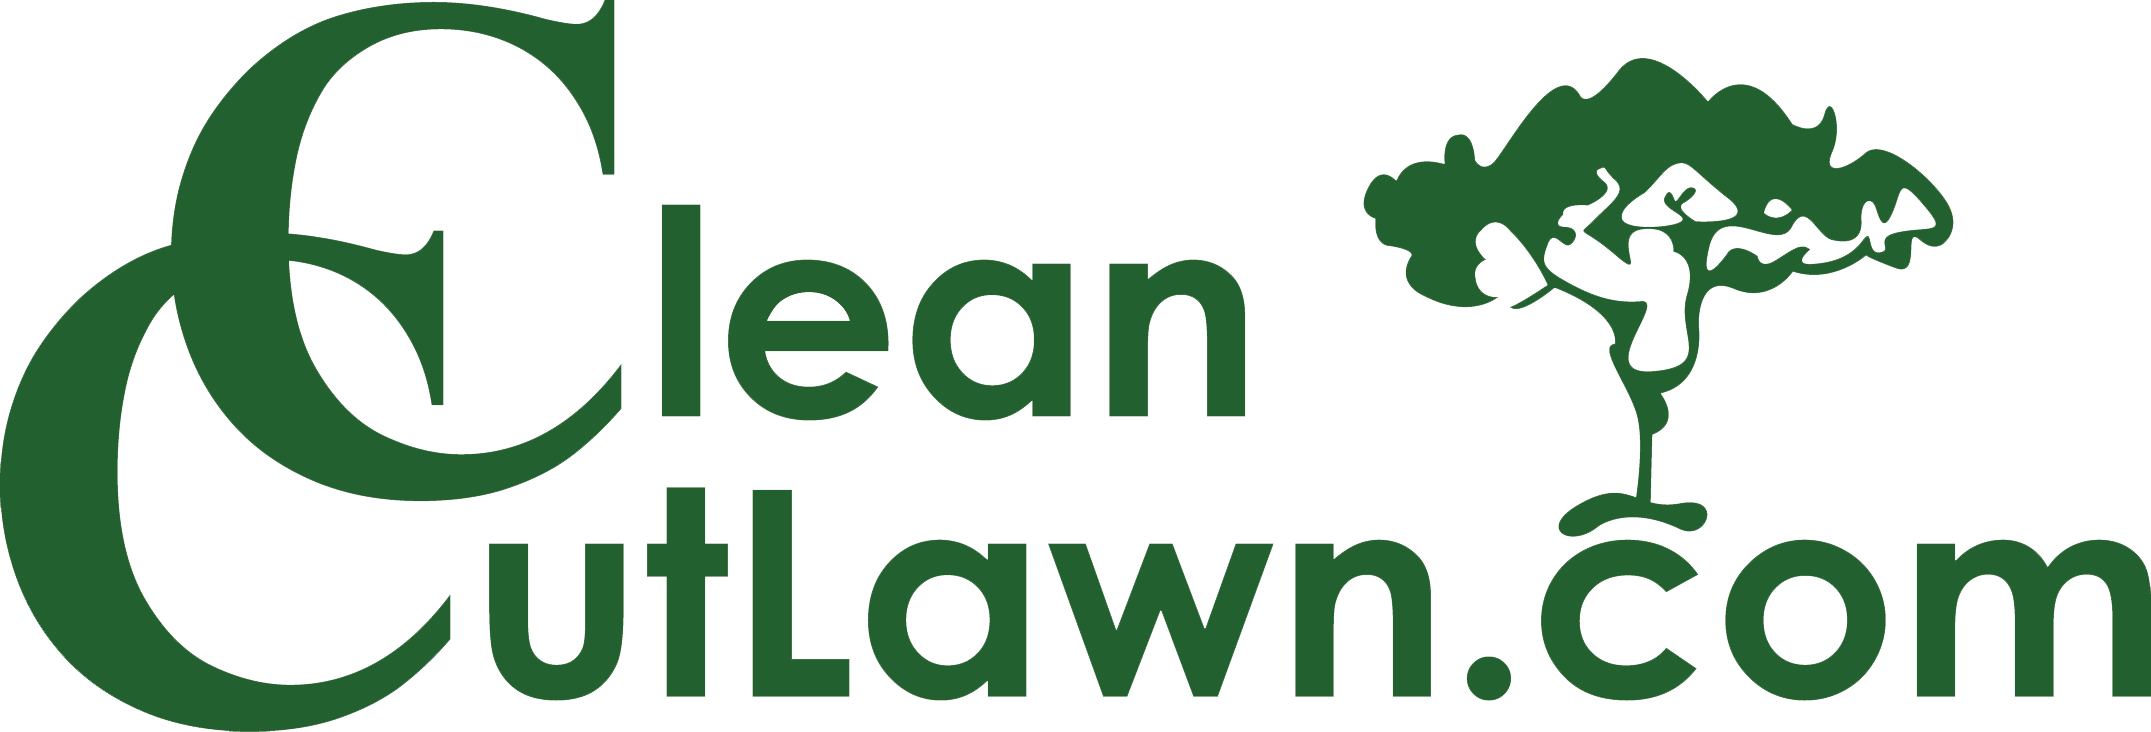 Cleancutlawn